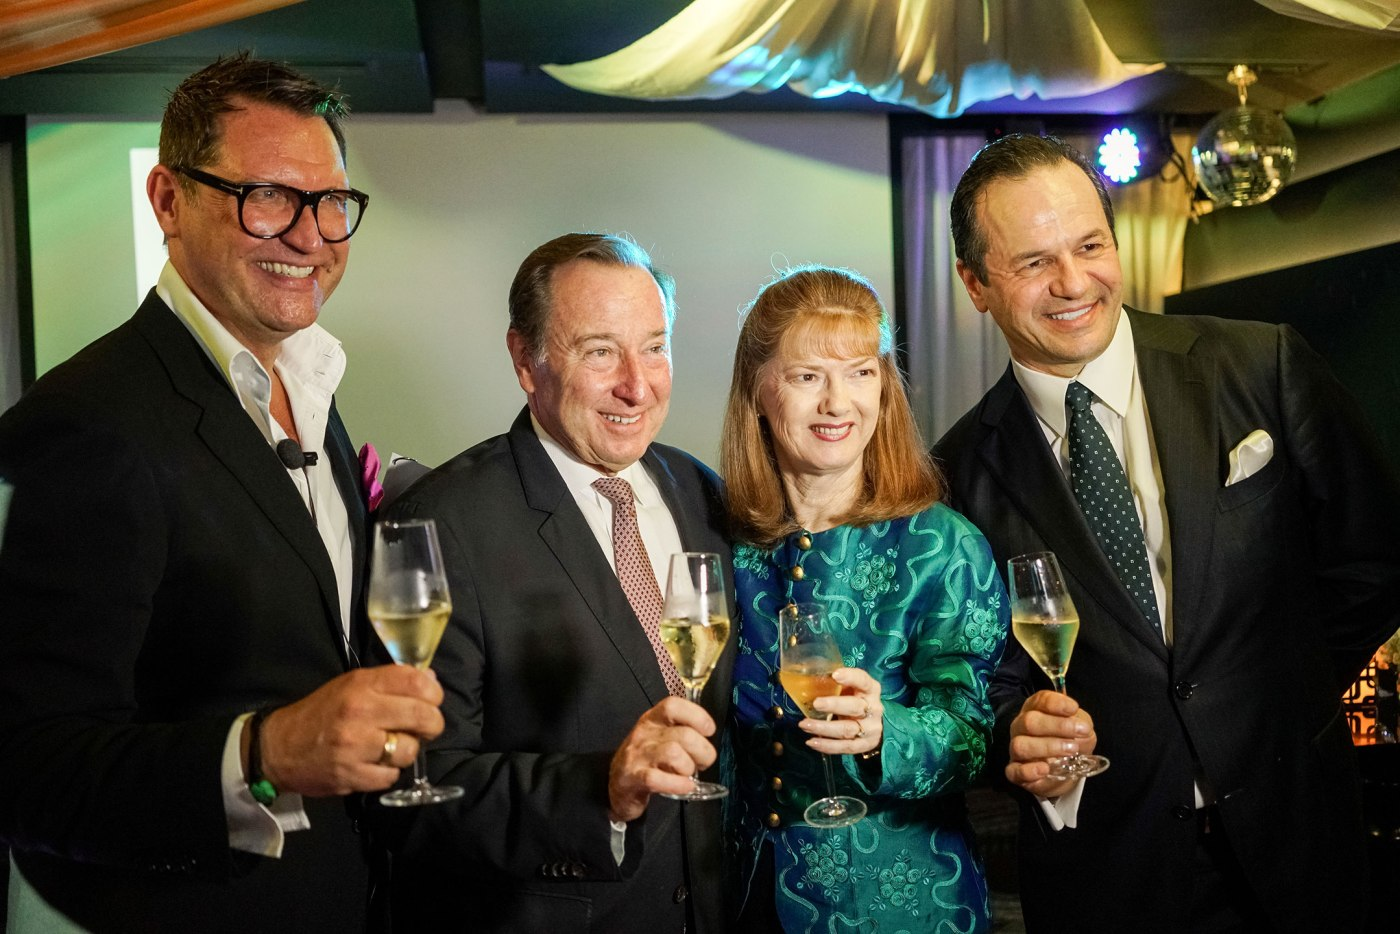 Marco Polo and Niccolo Hotels Vice President for Sales and Marketing Philip Schaetz, Frank Reichenbach, Marco Polo and Niccolo Hotels President Dr. Jennifer Cronin, Marco Polo and Niccolo Hotels Vice President for Operations Philippe Caretti, during the toast for the announcement of the Forbes Travel Guide